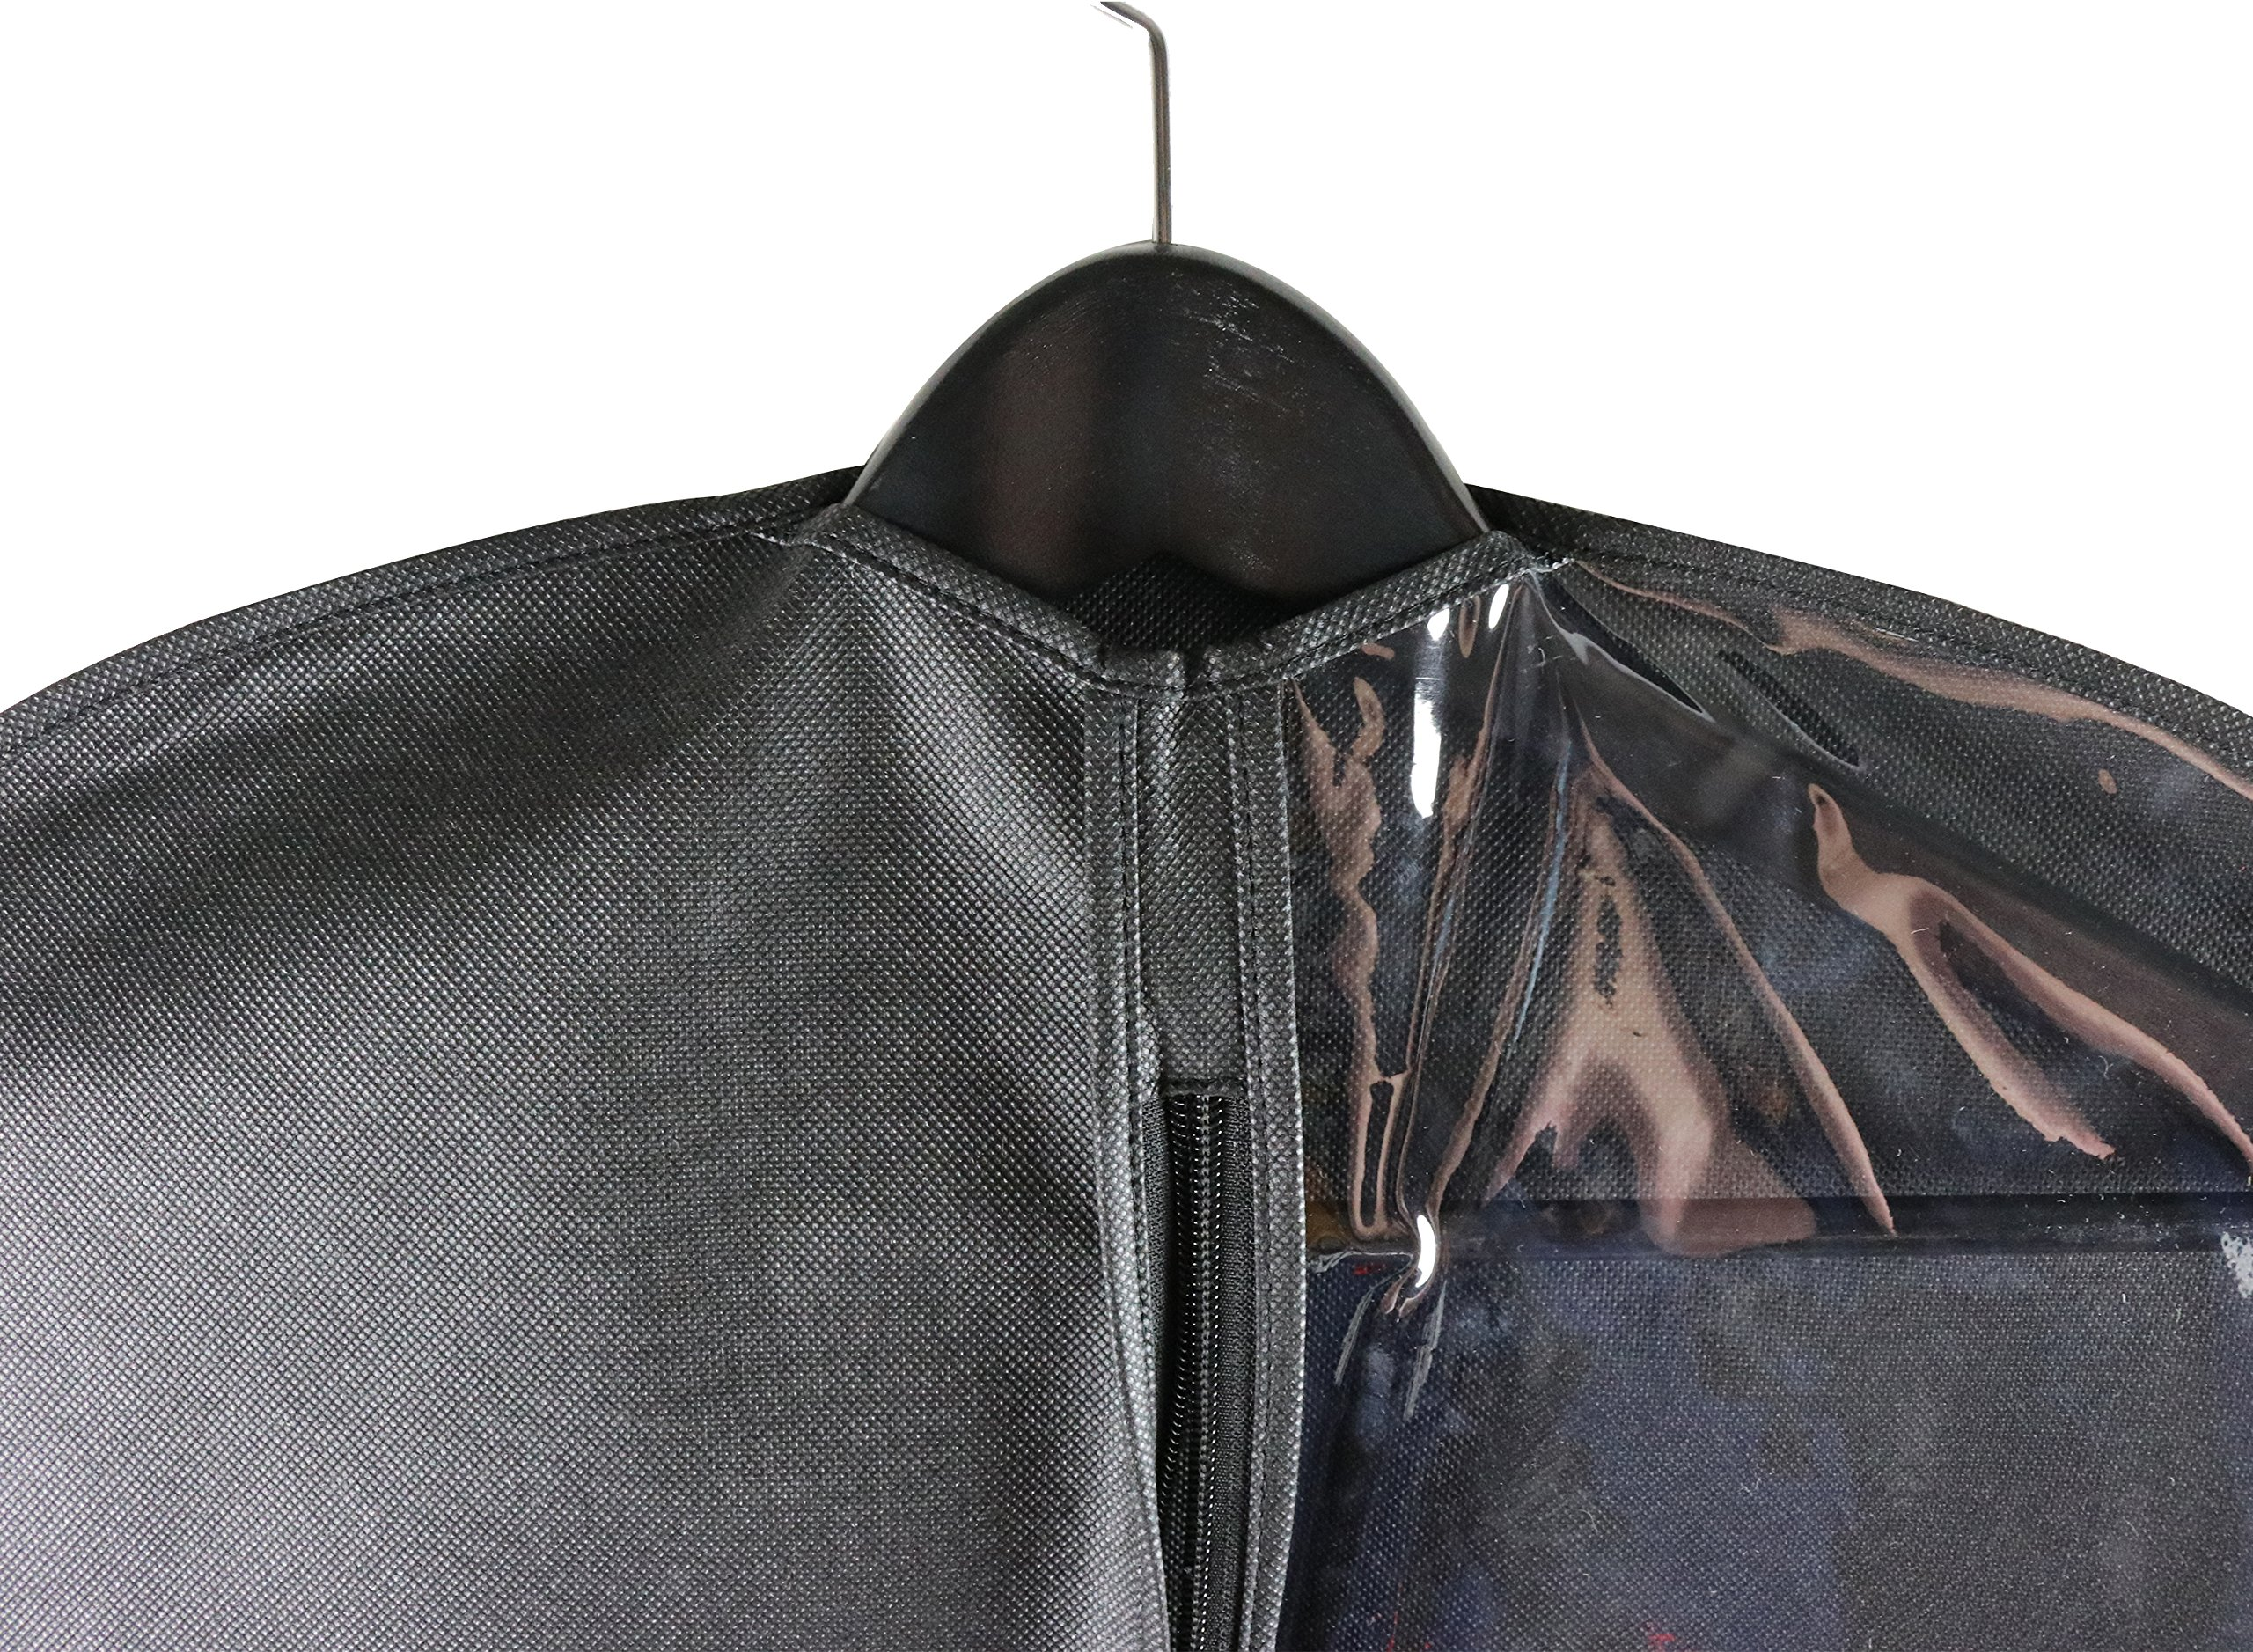 Caskyan 42'' Garment Bags, Breathable Black Non-Woven Fabric + Clear PVC for Dresses, Coats, Suits, Storage or Travel- 2 Pcs